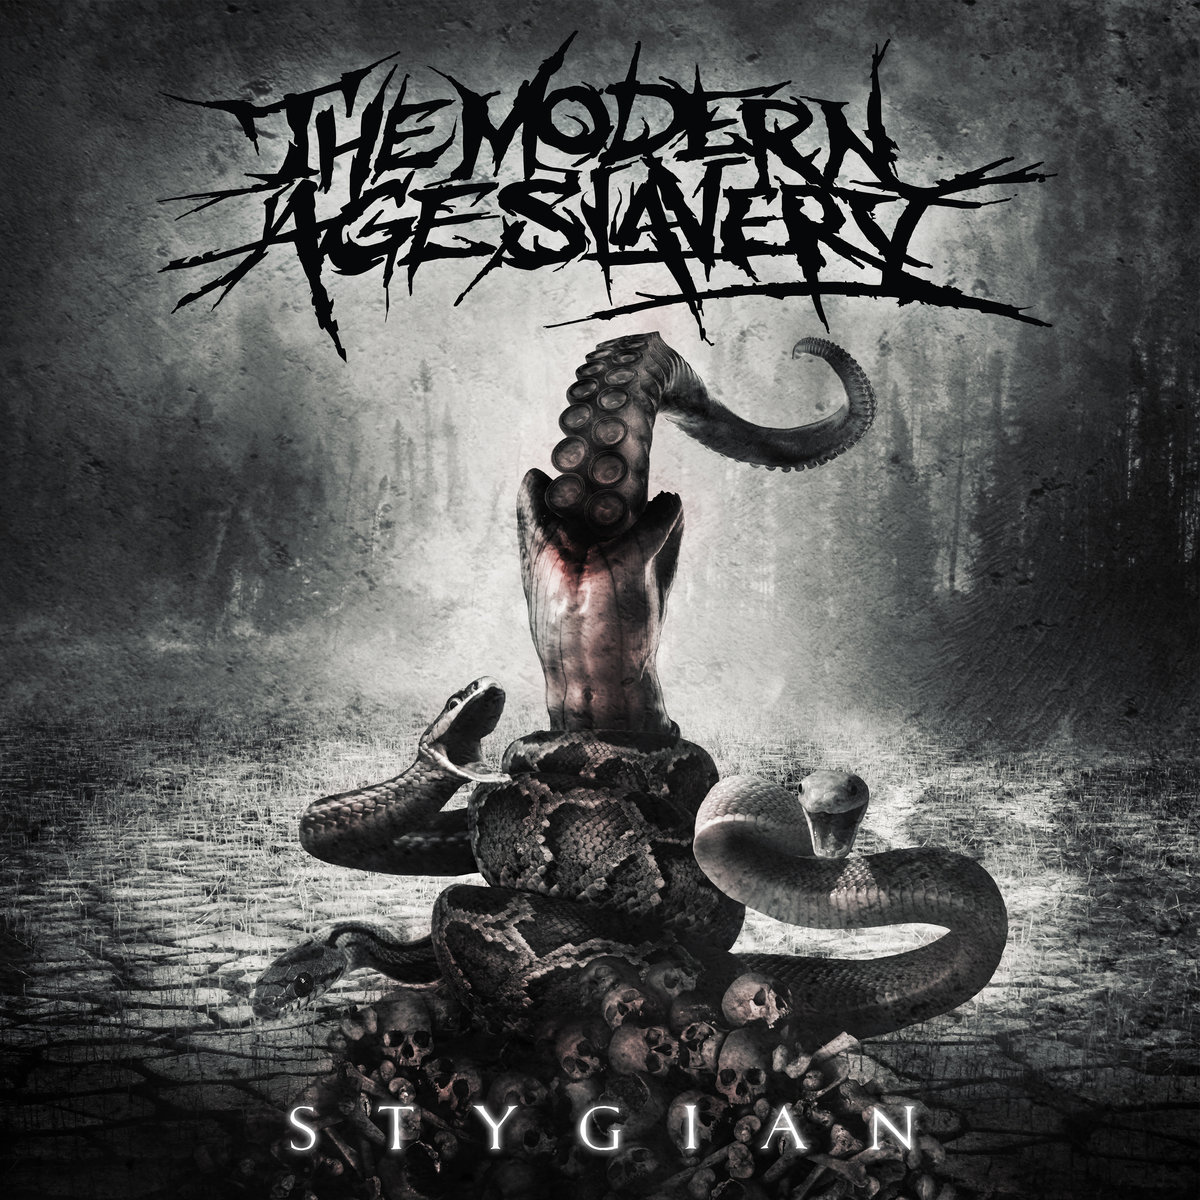 The Modern Age Slavery – Stygian Album Review